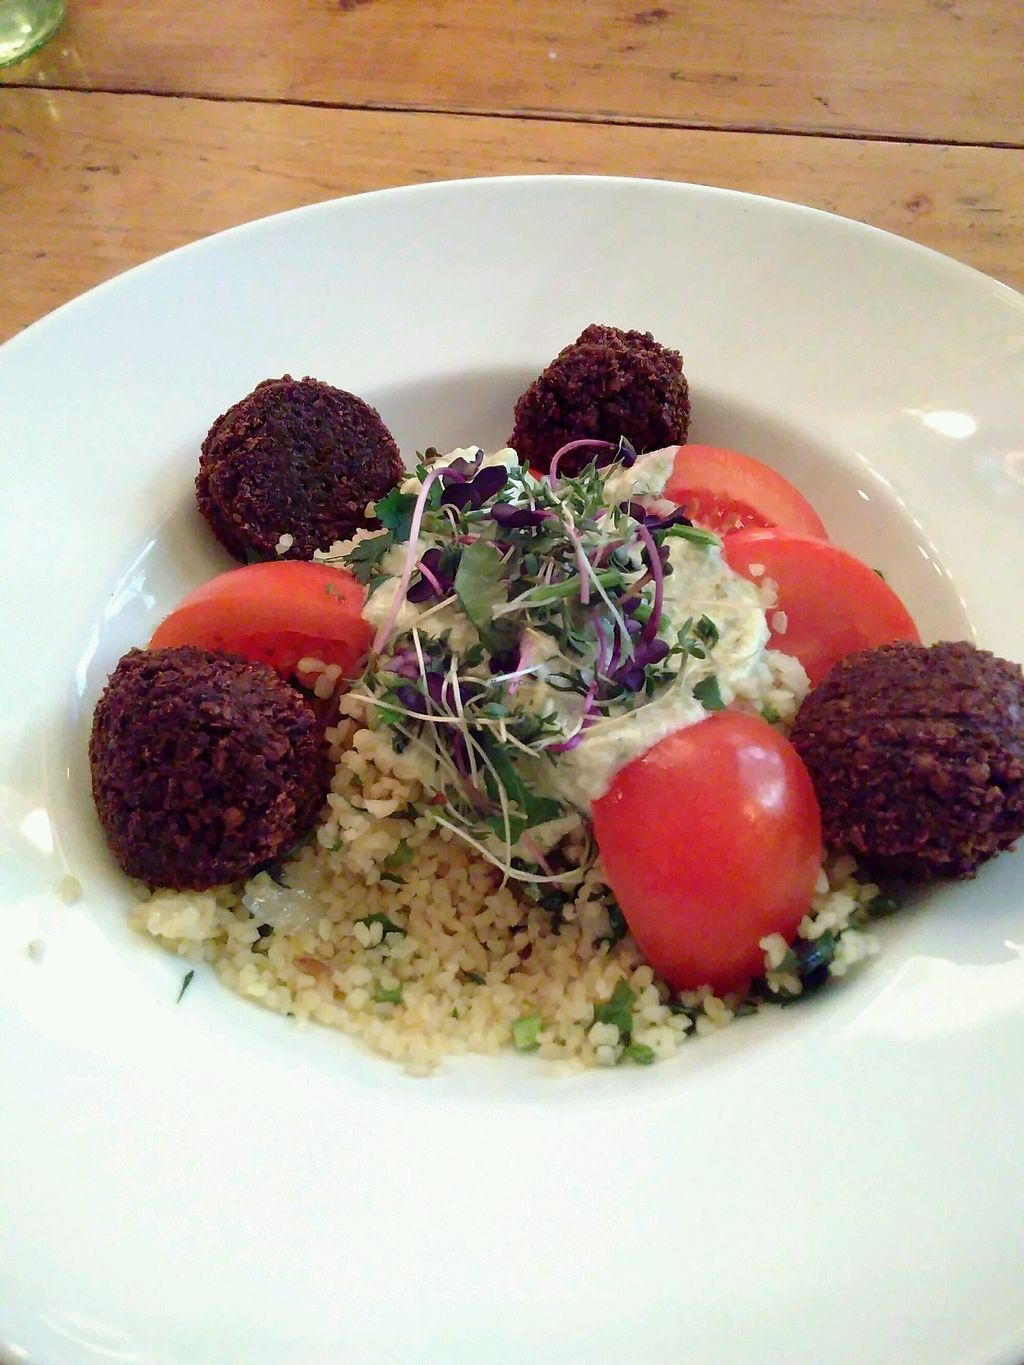 """Photo of Margarete  by <a href=""""/members/profile/UDth"""">UDth</a> <br/>Falafel with bulgur salad and tahina with lemon <br/> January 27, 2018  - <a href='/contact/abuse/image/64004/351412'>Report</a>"""